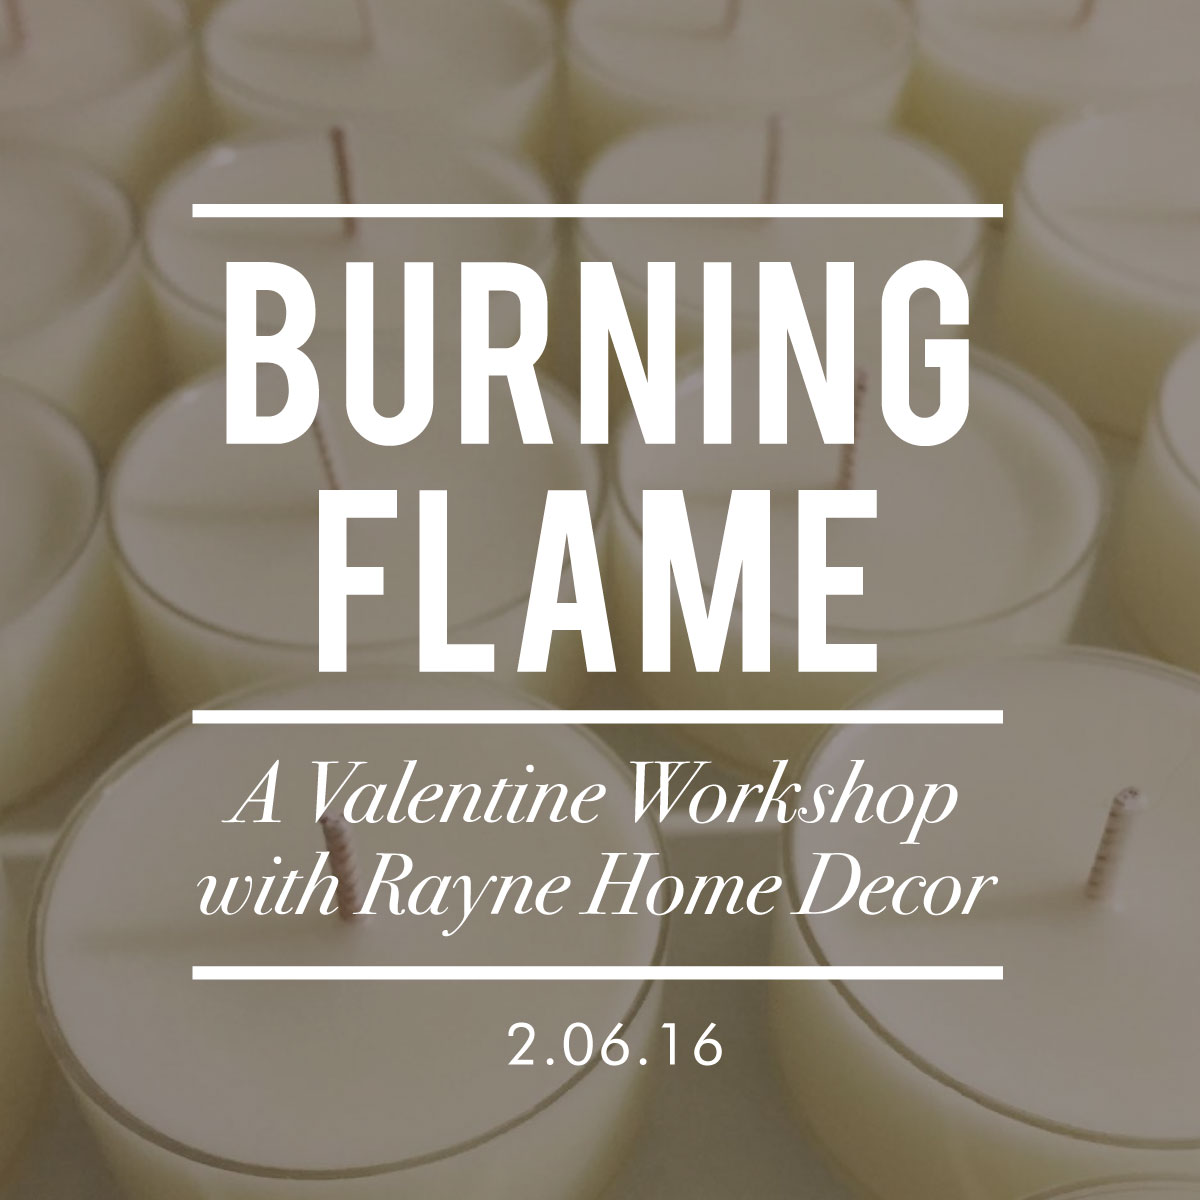 http://hartfordprints.com/shop/candle-maker-valentine-workshop-february-6th-2016/